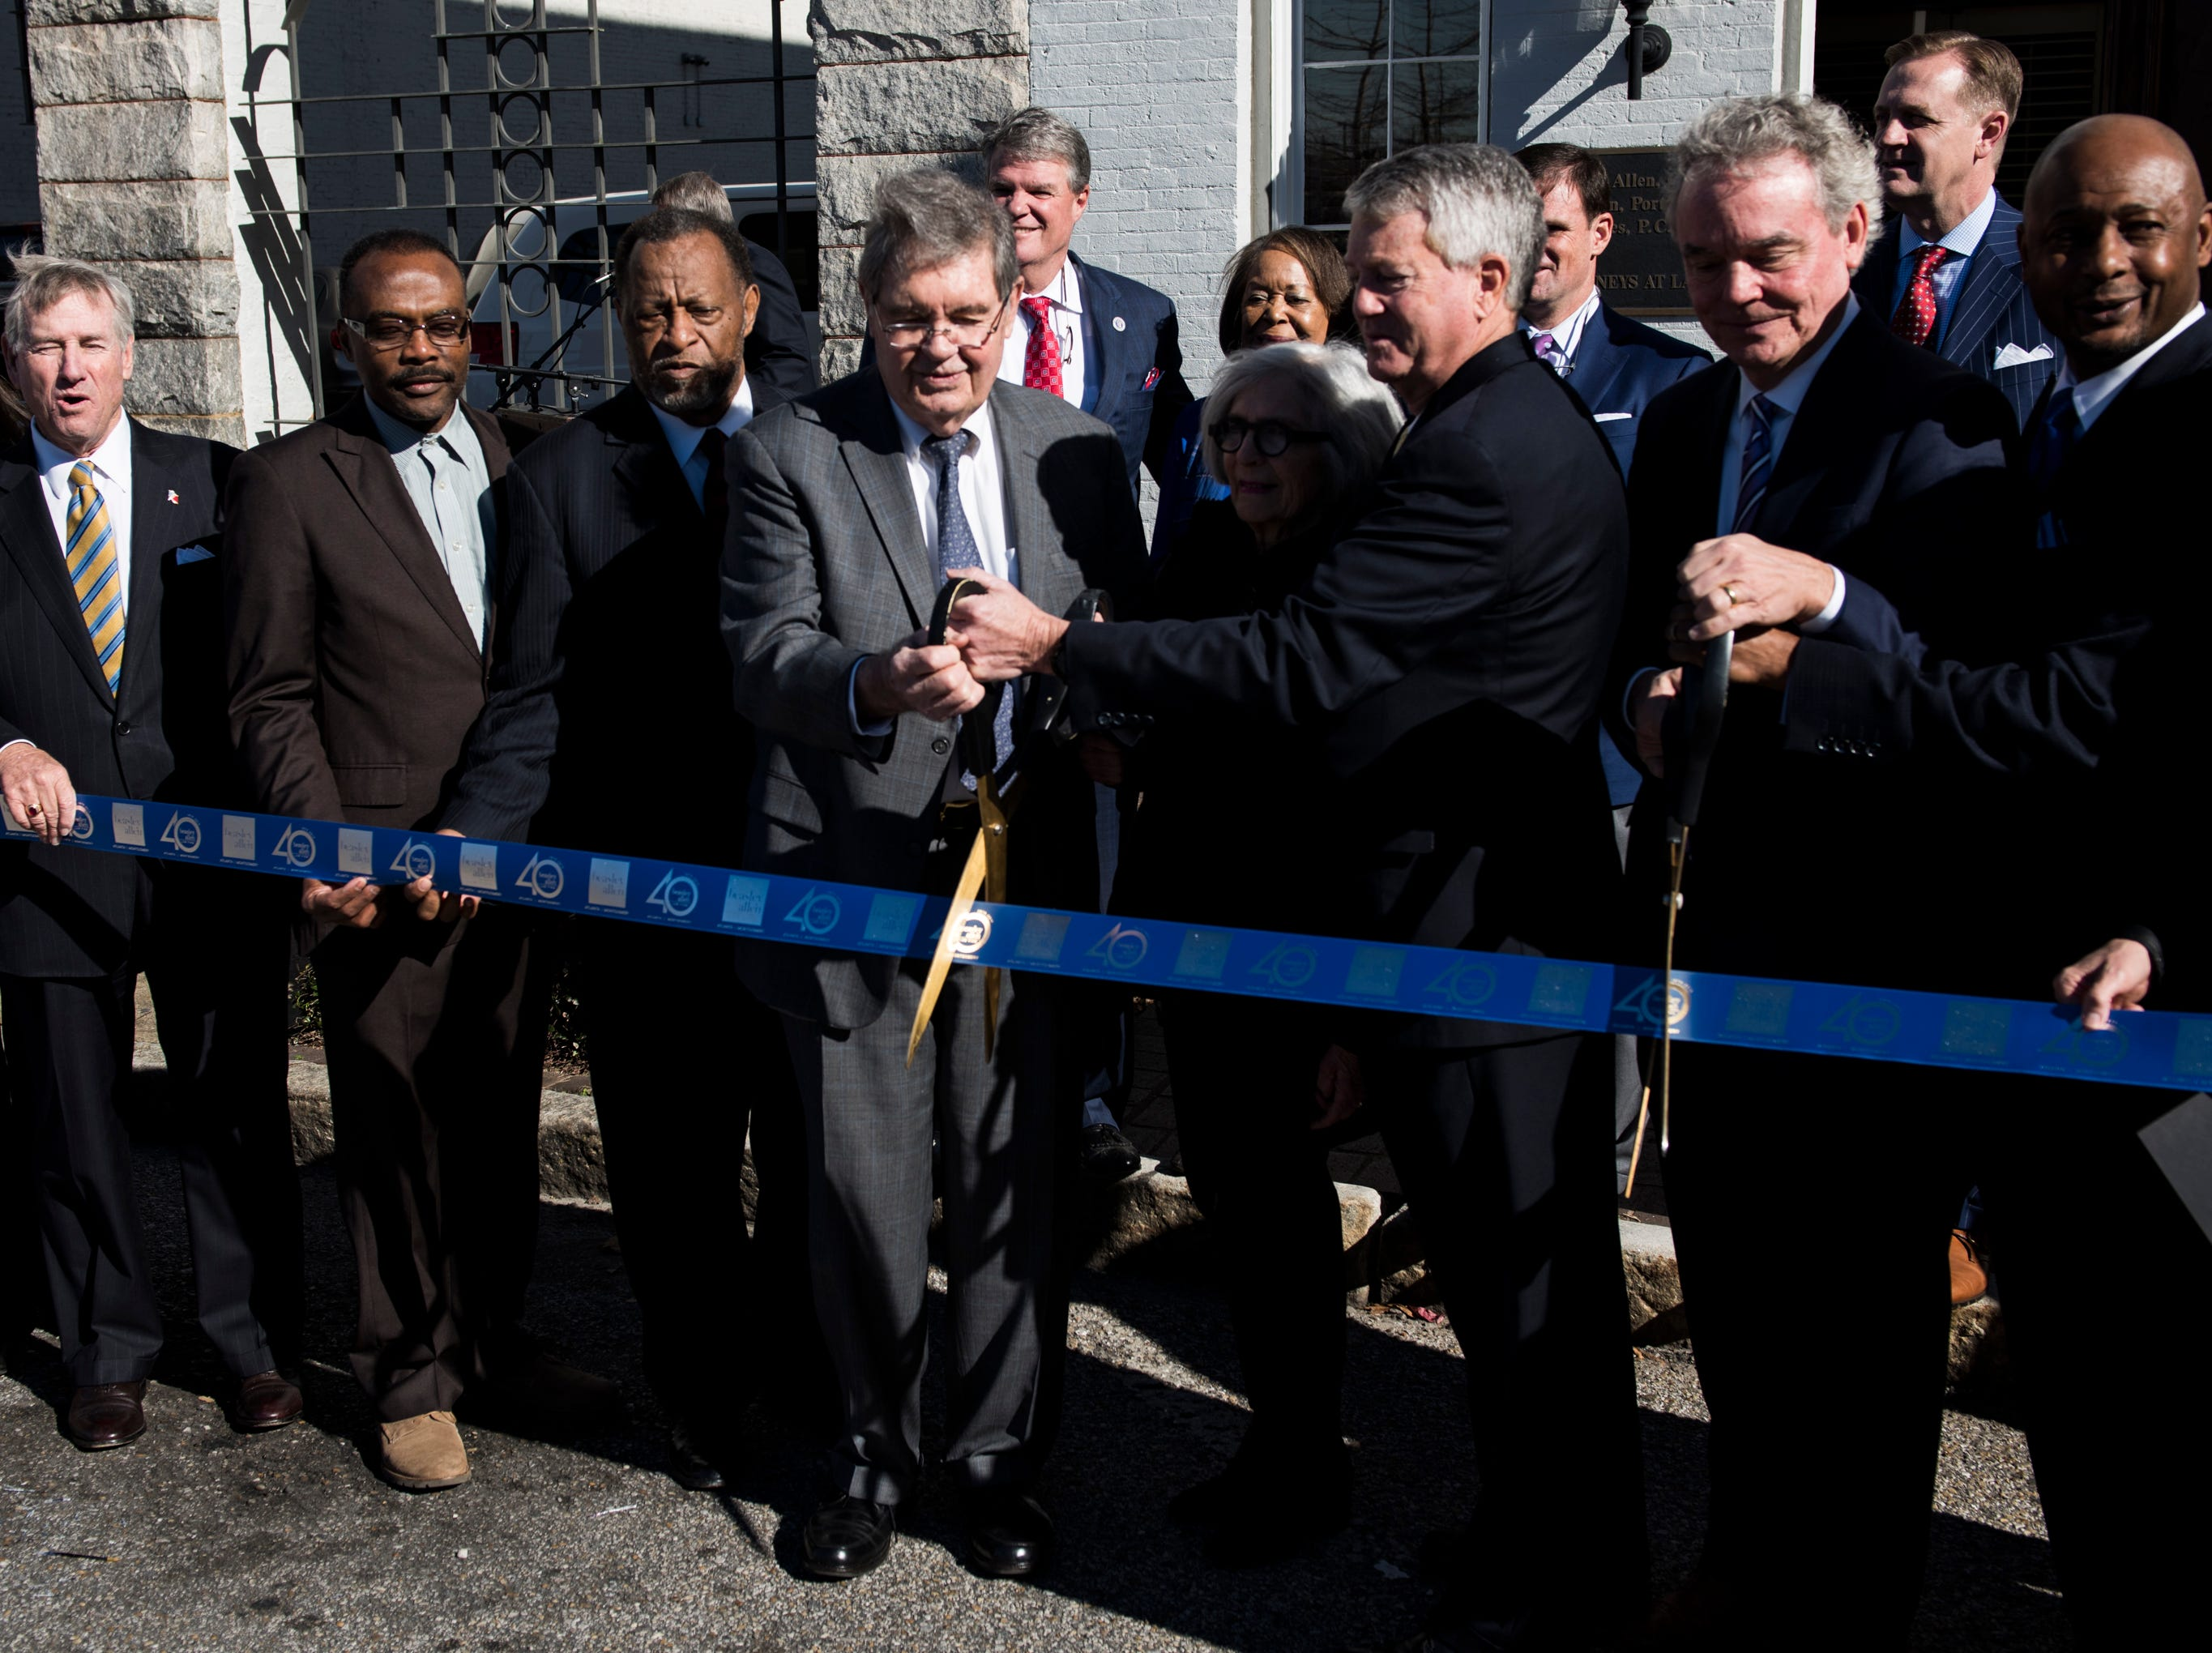 Jere Beasley, middle left, and Greg Allen, middle right, cut a ribbon during the Beasley Allen law firm 40th anniversary celebration in Montgomery, Ala., on Wednesday, Jan. 9, 2019.